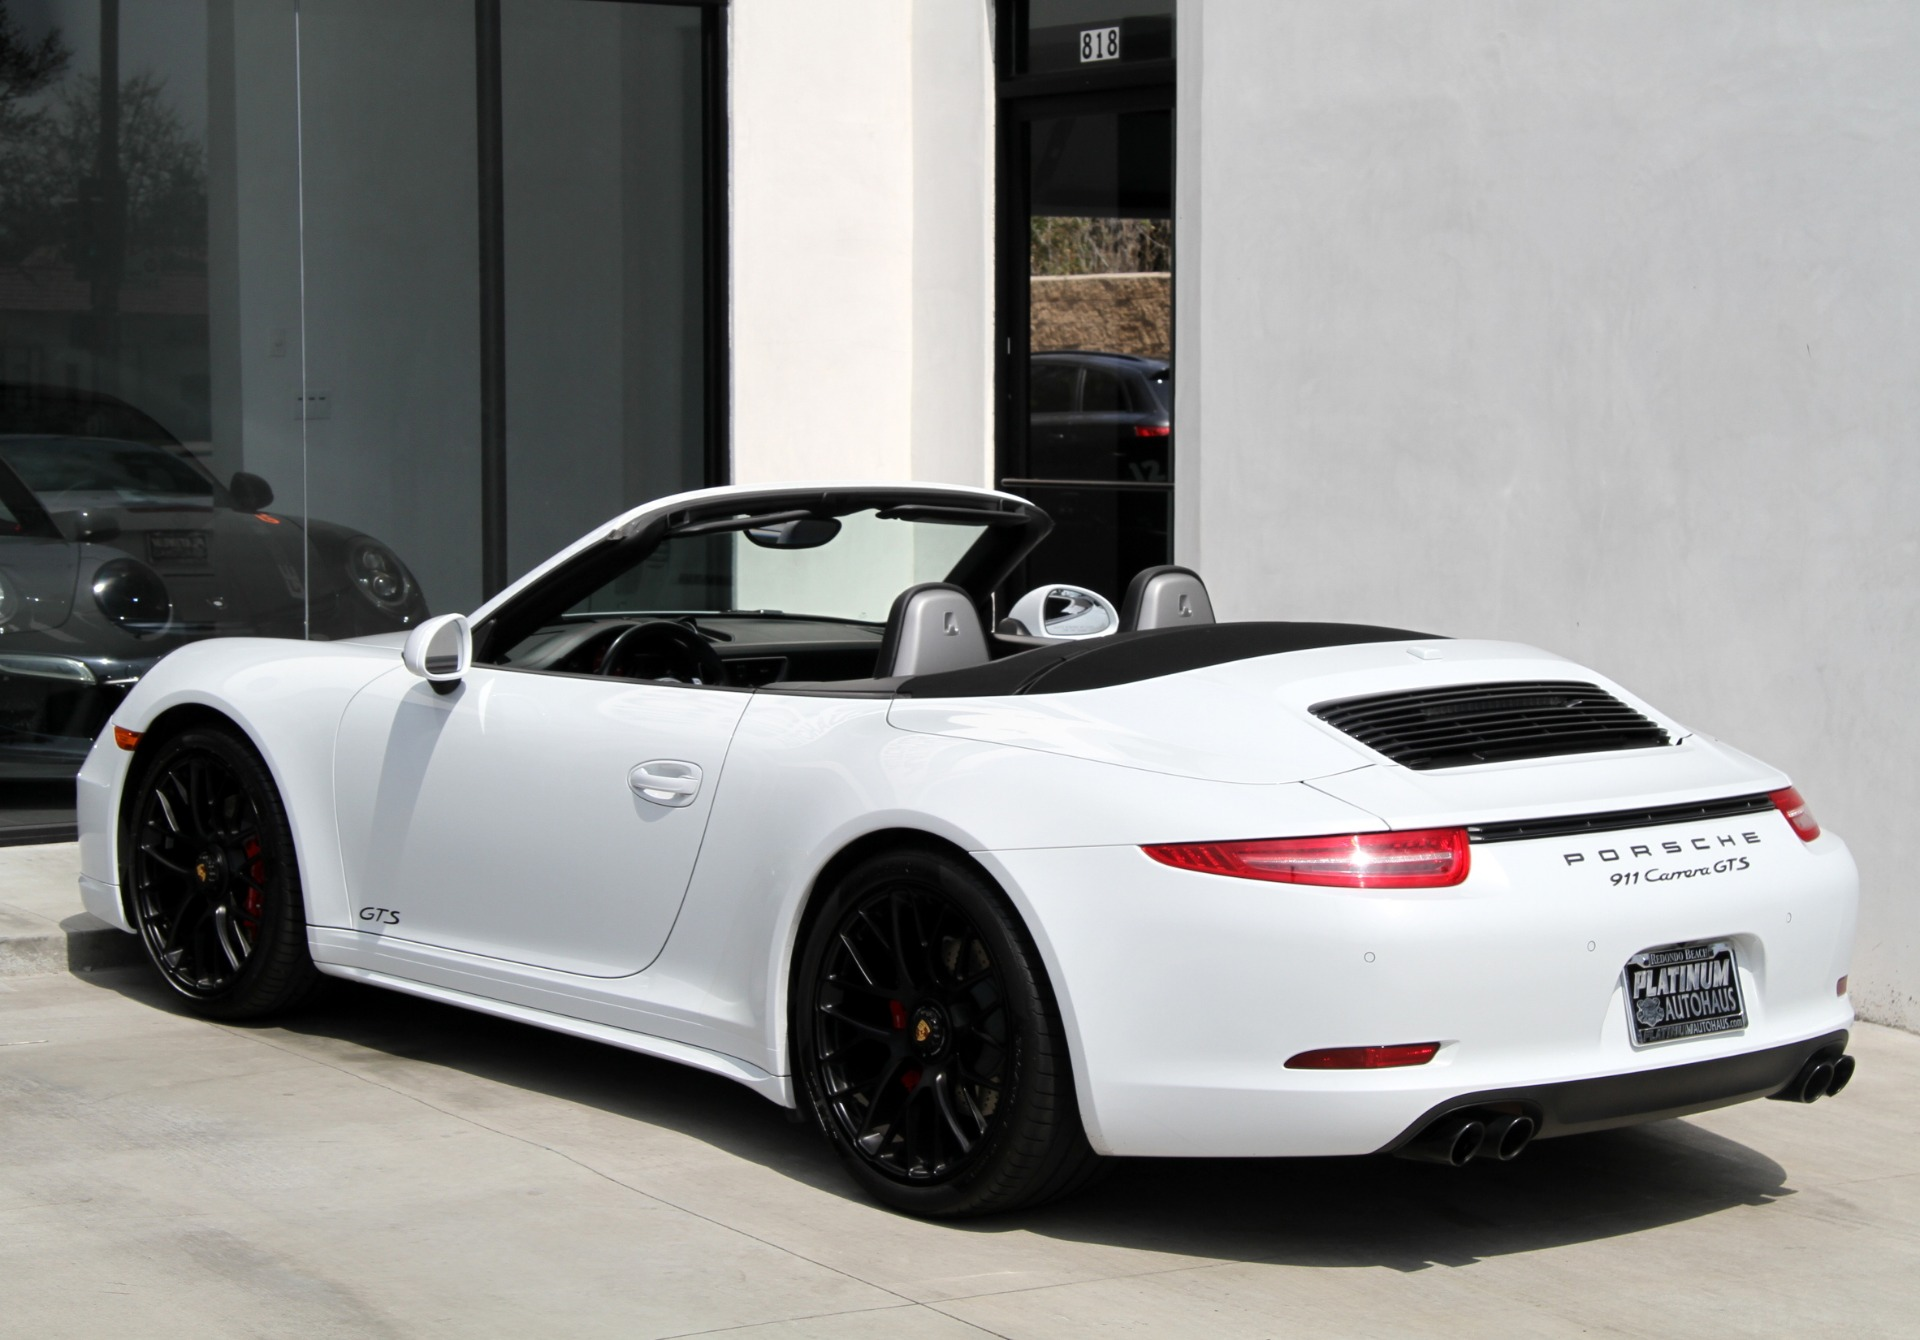 2015 porsche 911 carrera gts orig msrp of 153 205 stock 6110 for sale near redondo. Black Bedroom Furniture Sets. Home Design Ideas